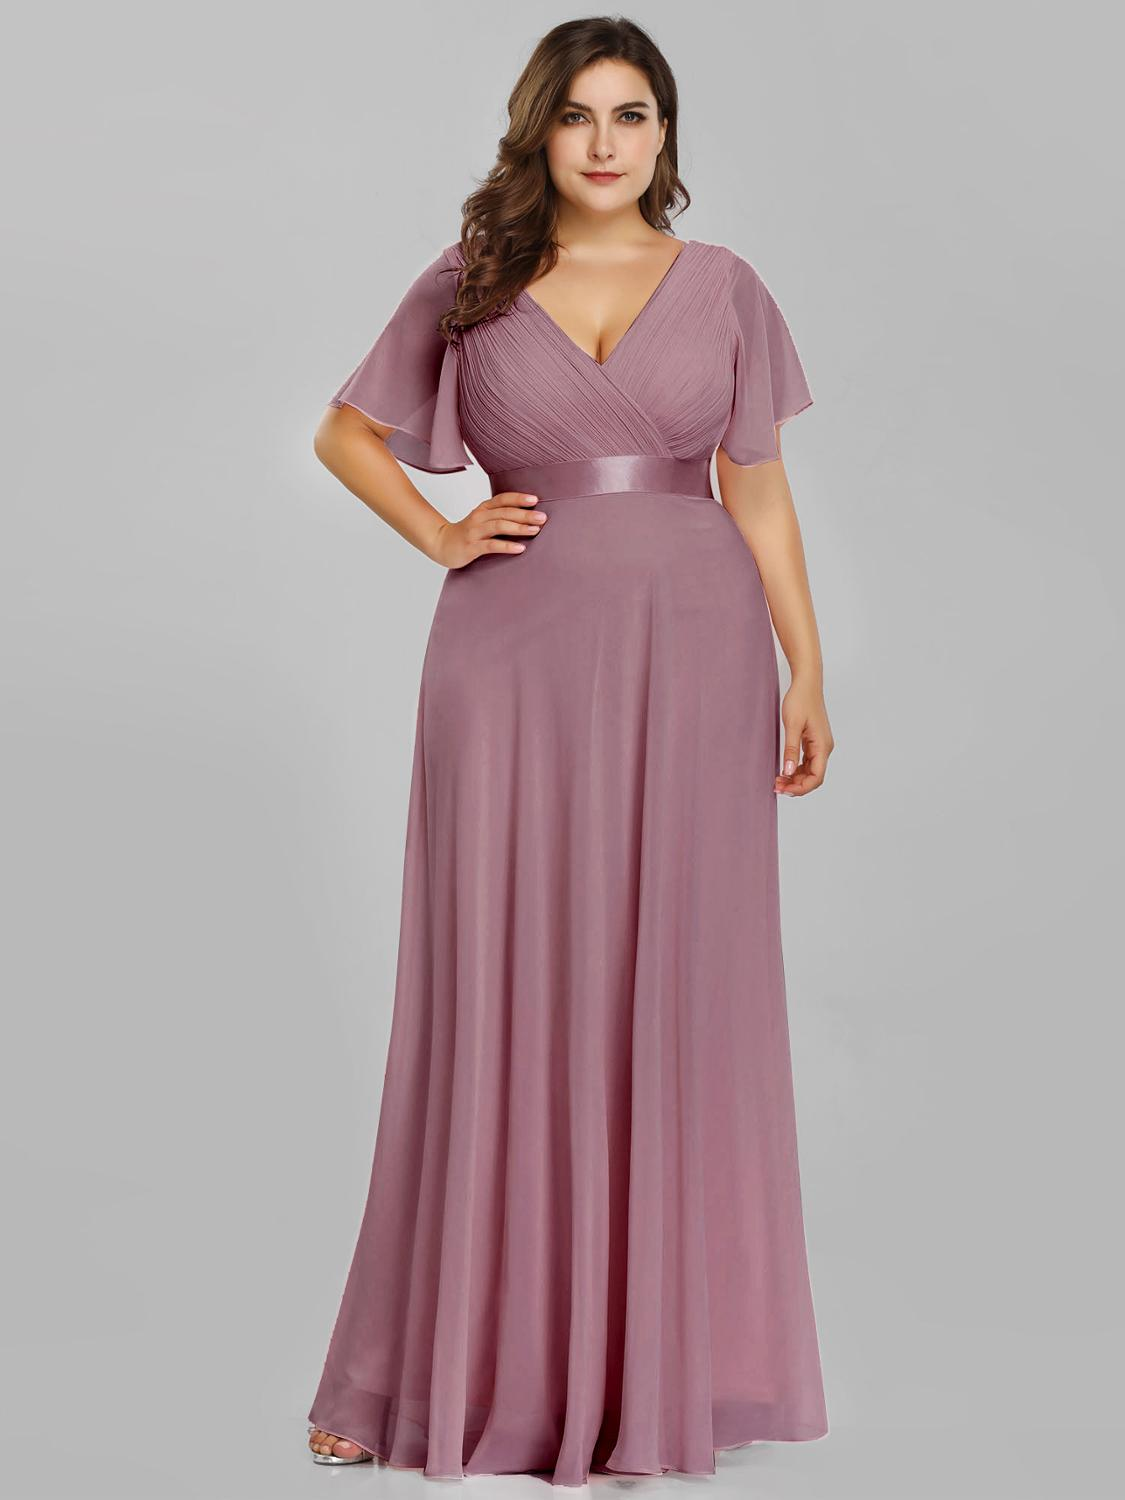 Prom-Dresses Party-Gowns Robe-De-Soiree Navy-Blue Formal Long Pink Plus-Size Women Ever Pretty